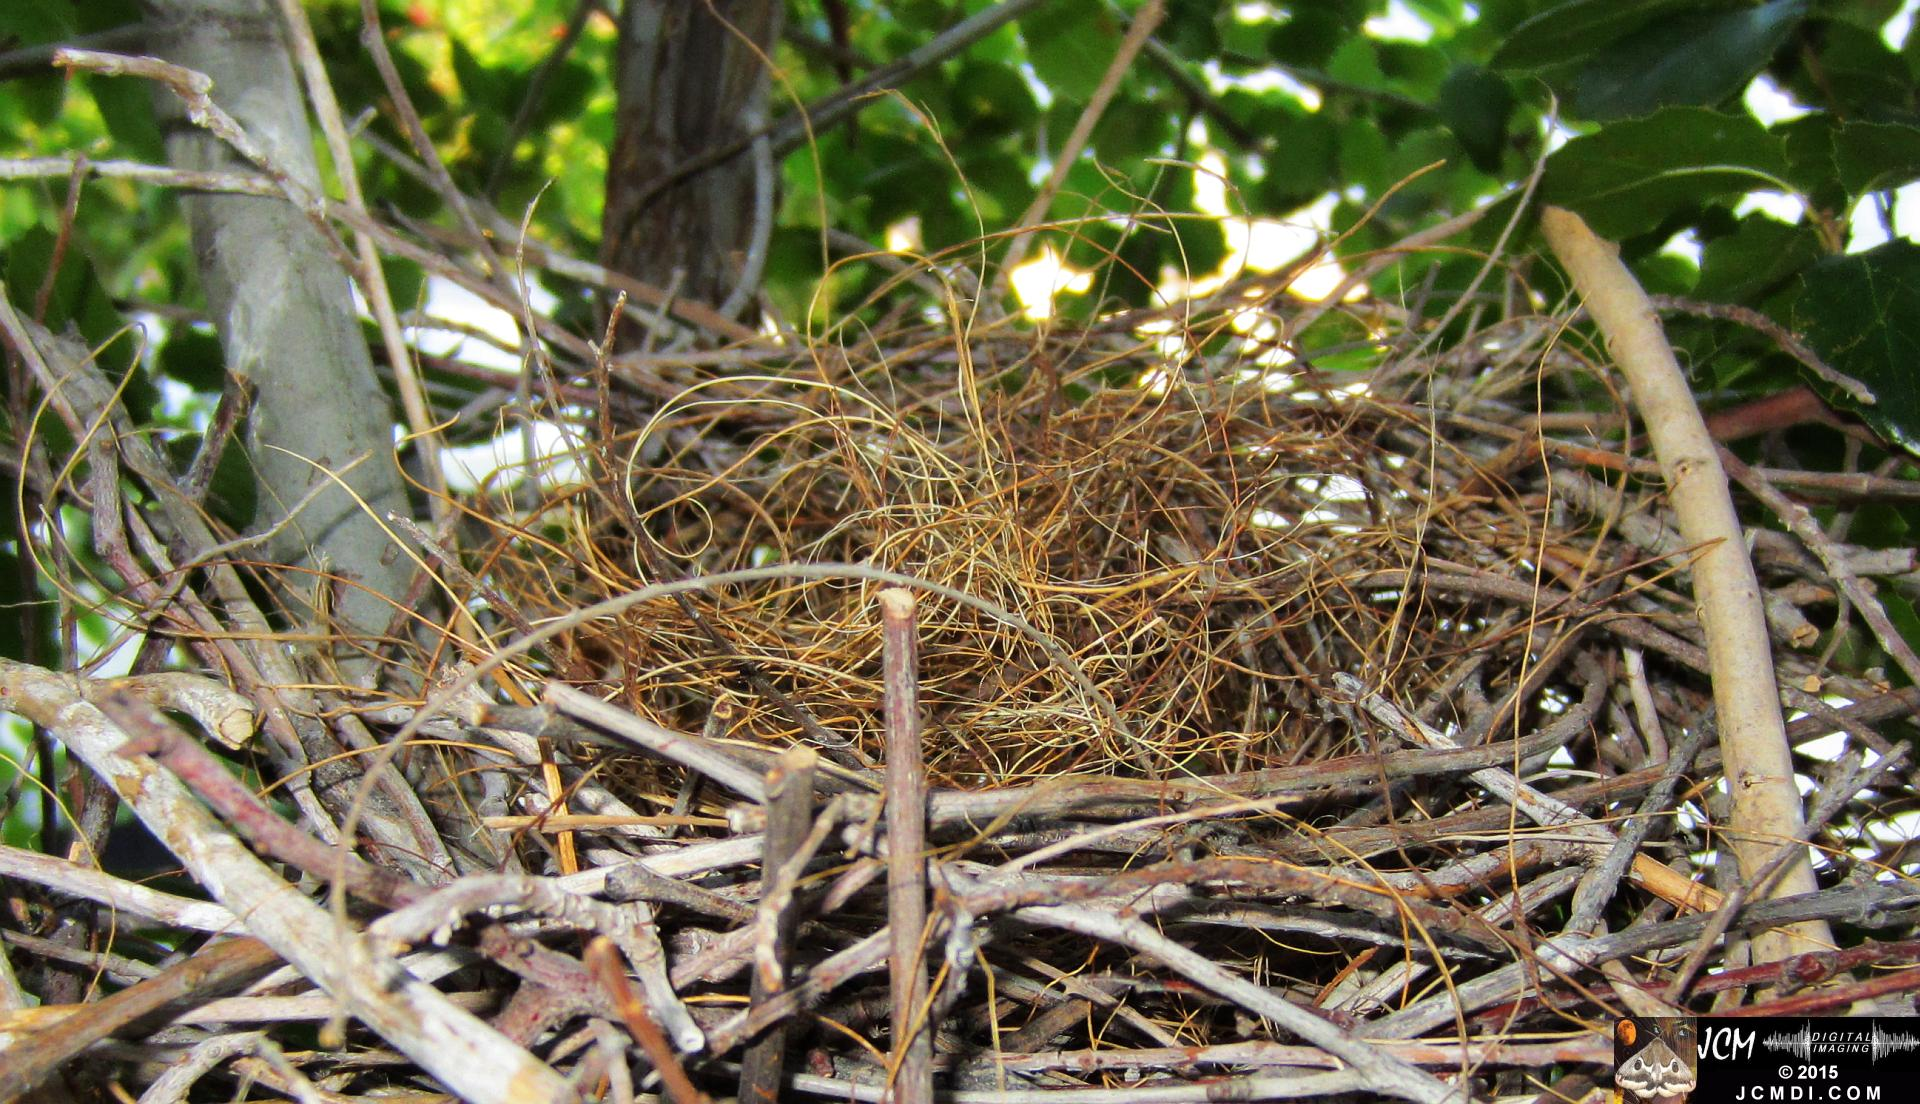 Scrub Jay nest disassembly – birds take apart their old nest using material to build a new one. JCMDI.COM